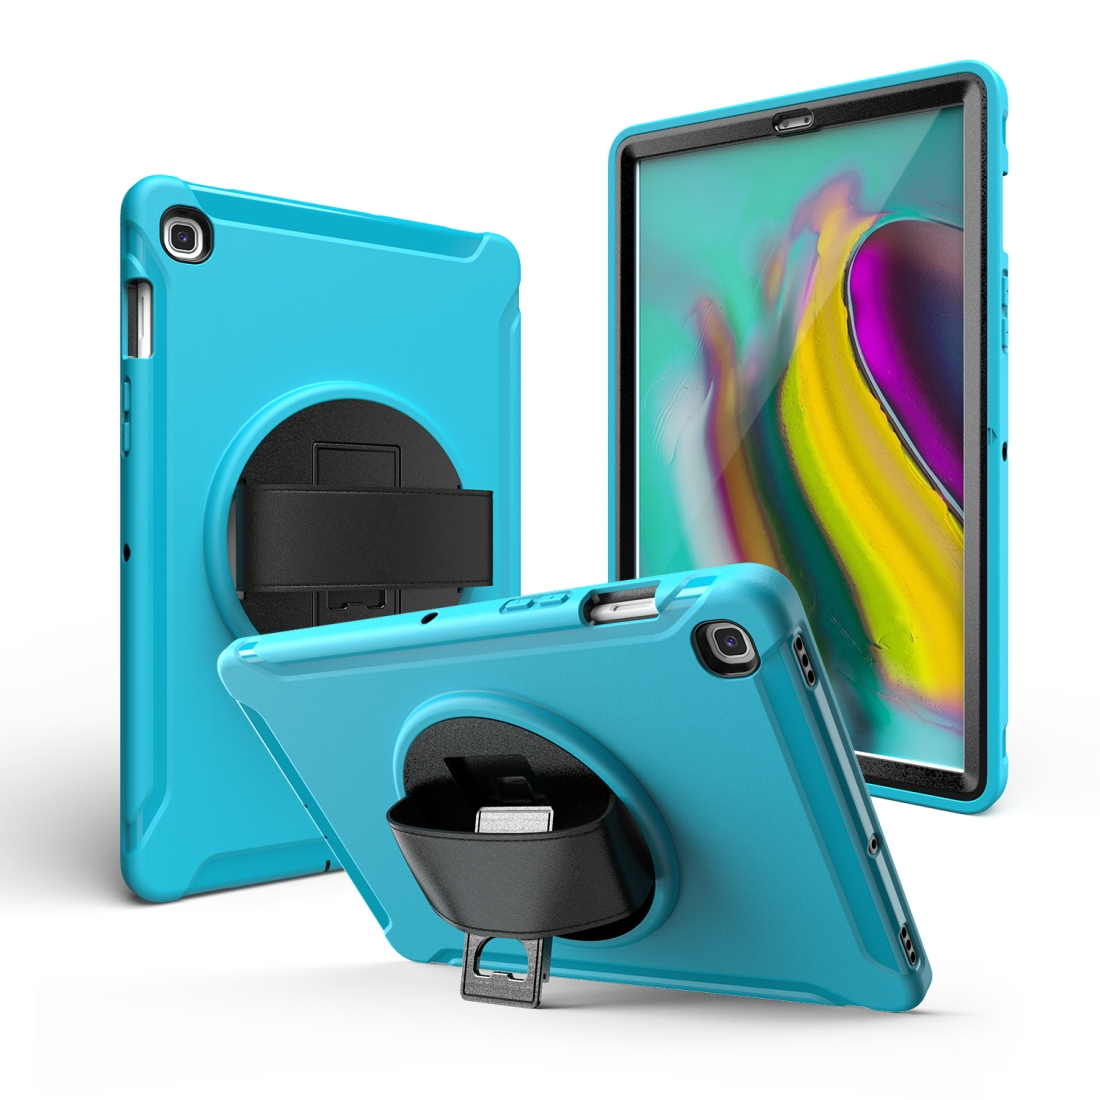 iPad 10.5 Case/ iPad Air 10.5 Case, Features A Rotating Protective Case With Hand-strap (Light Blue)